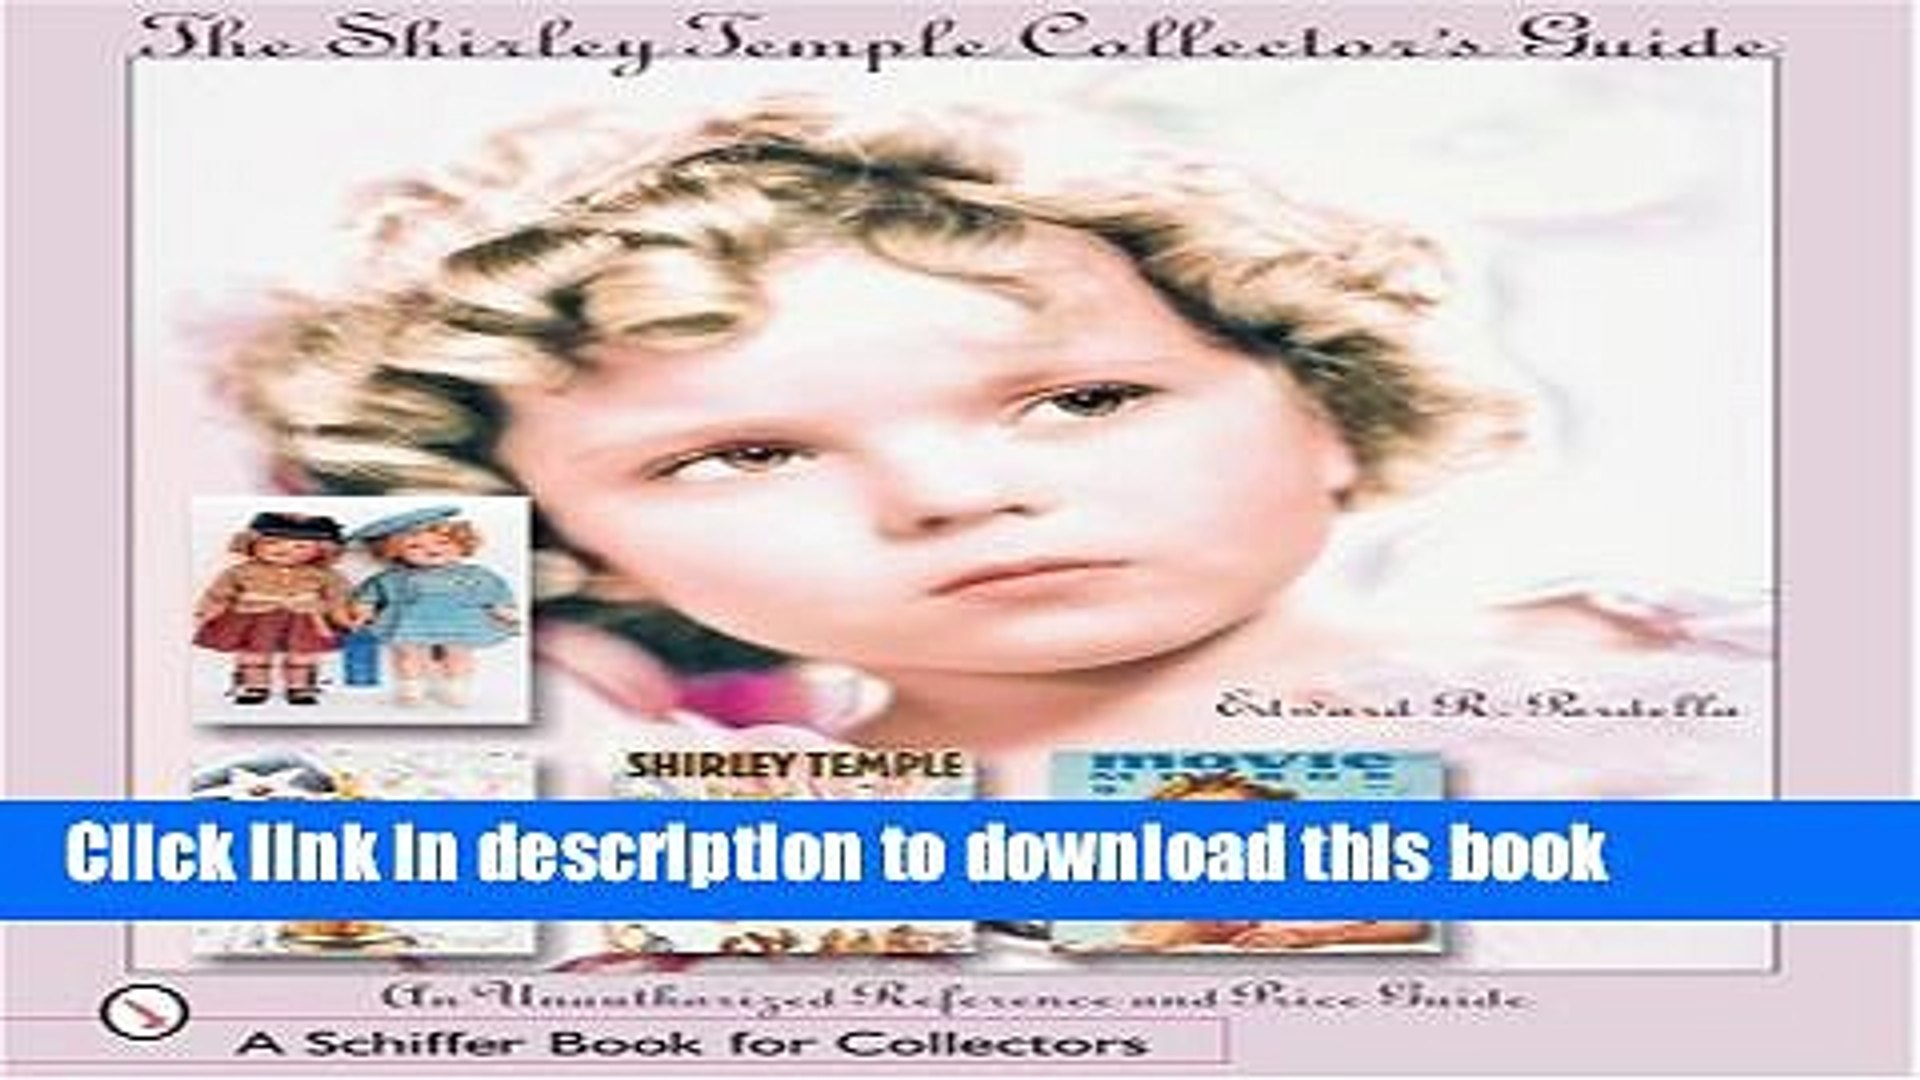 [Download] The Shirley Temple Collector s Guide: An Unauthorized Reference and Price Guide